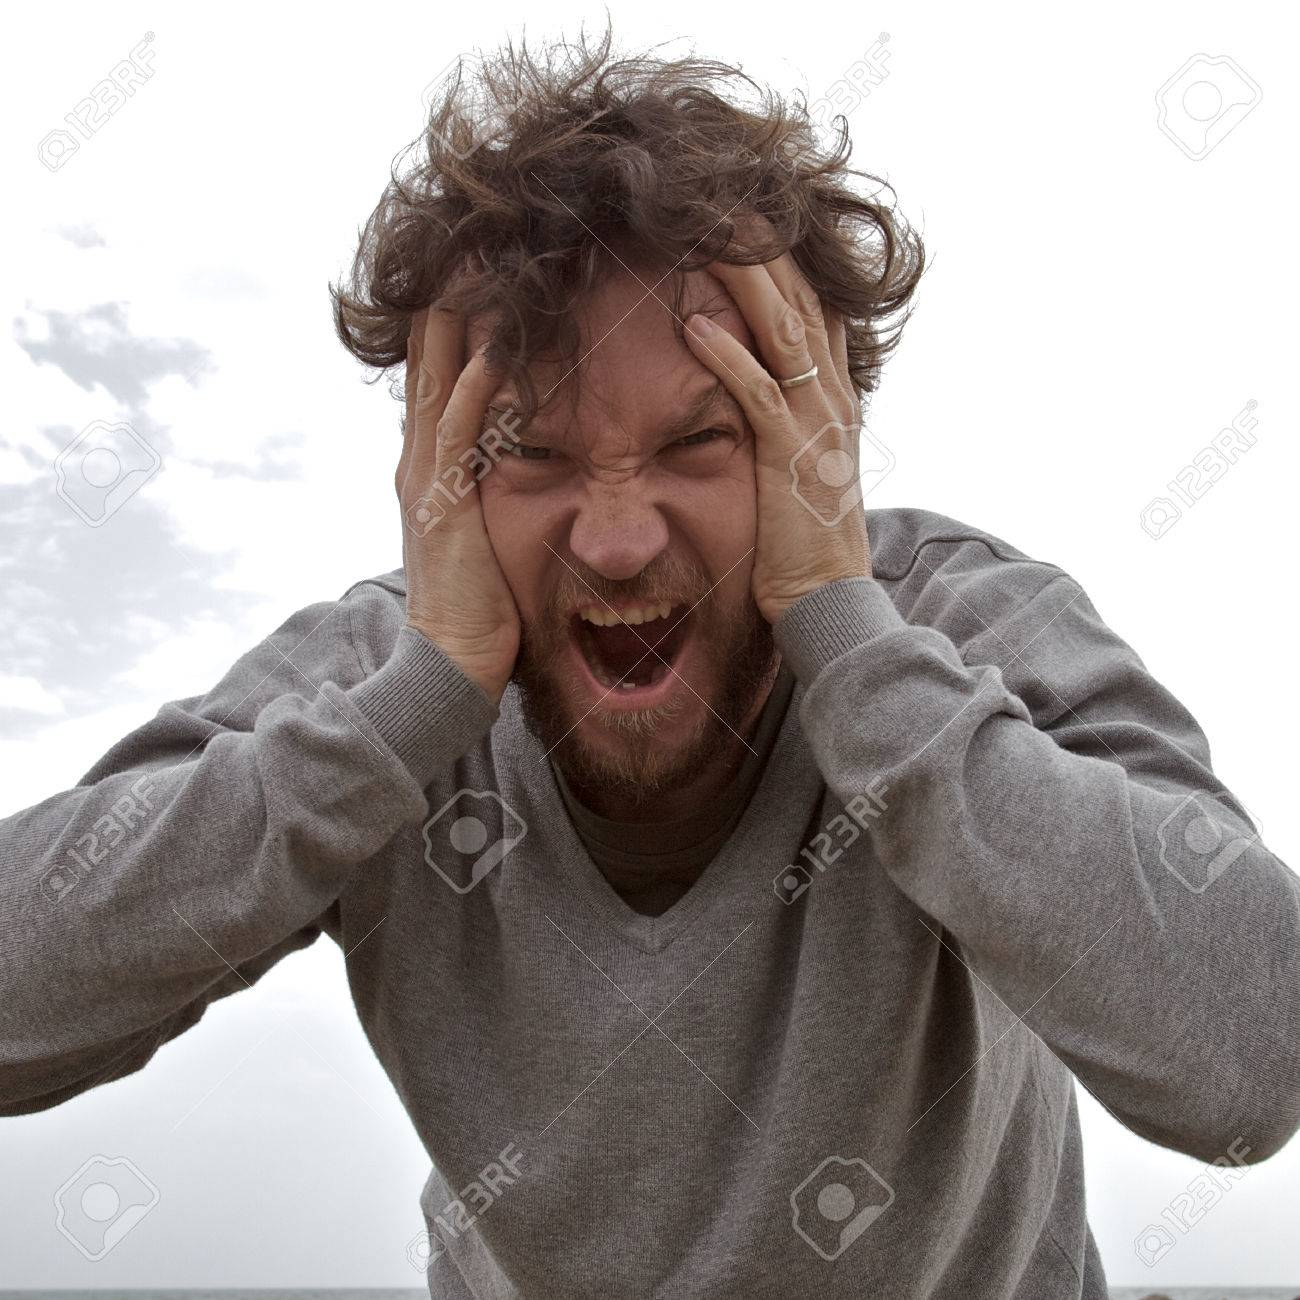 Desperate Man Shouting Asking For Help Stock Photo Picture And Royalty Free Image Image 30467627 Listen to desperate man on spotify. 123rf com